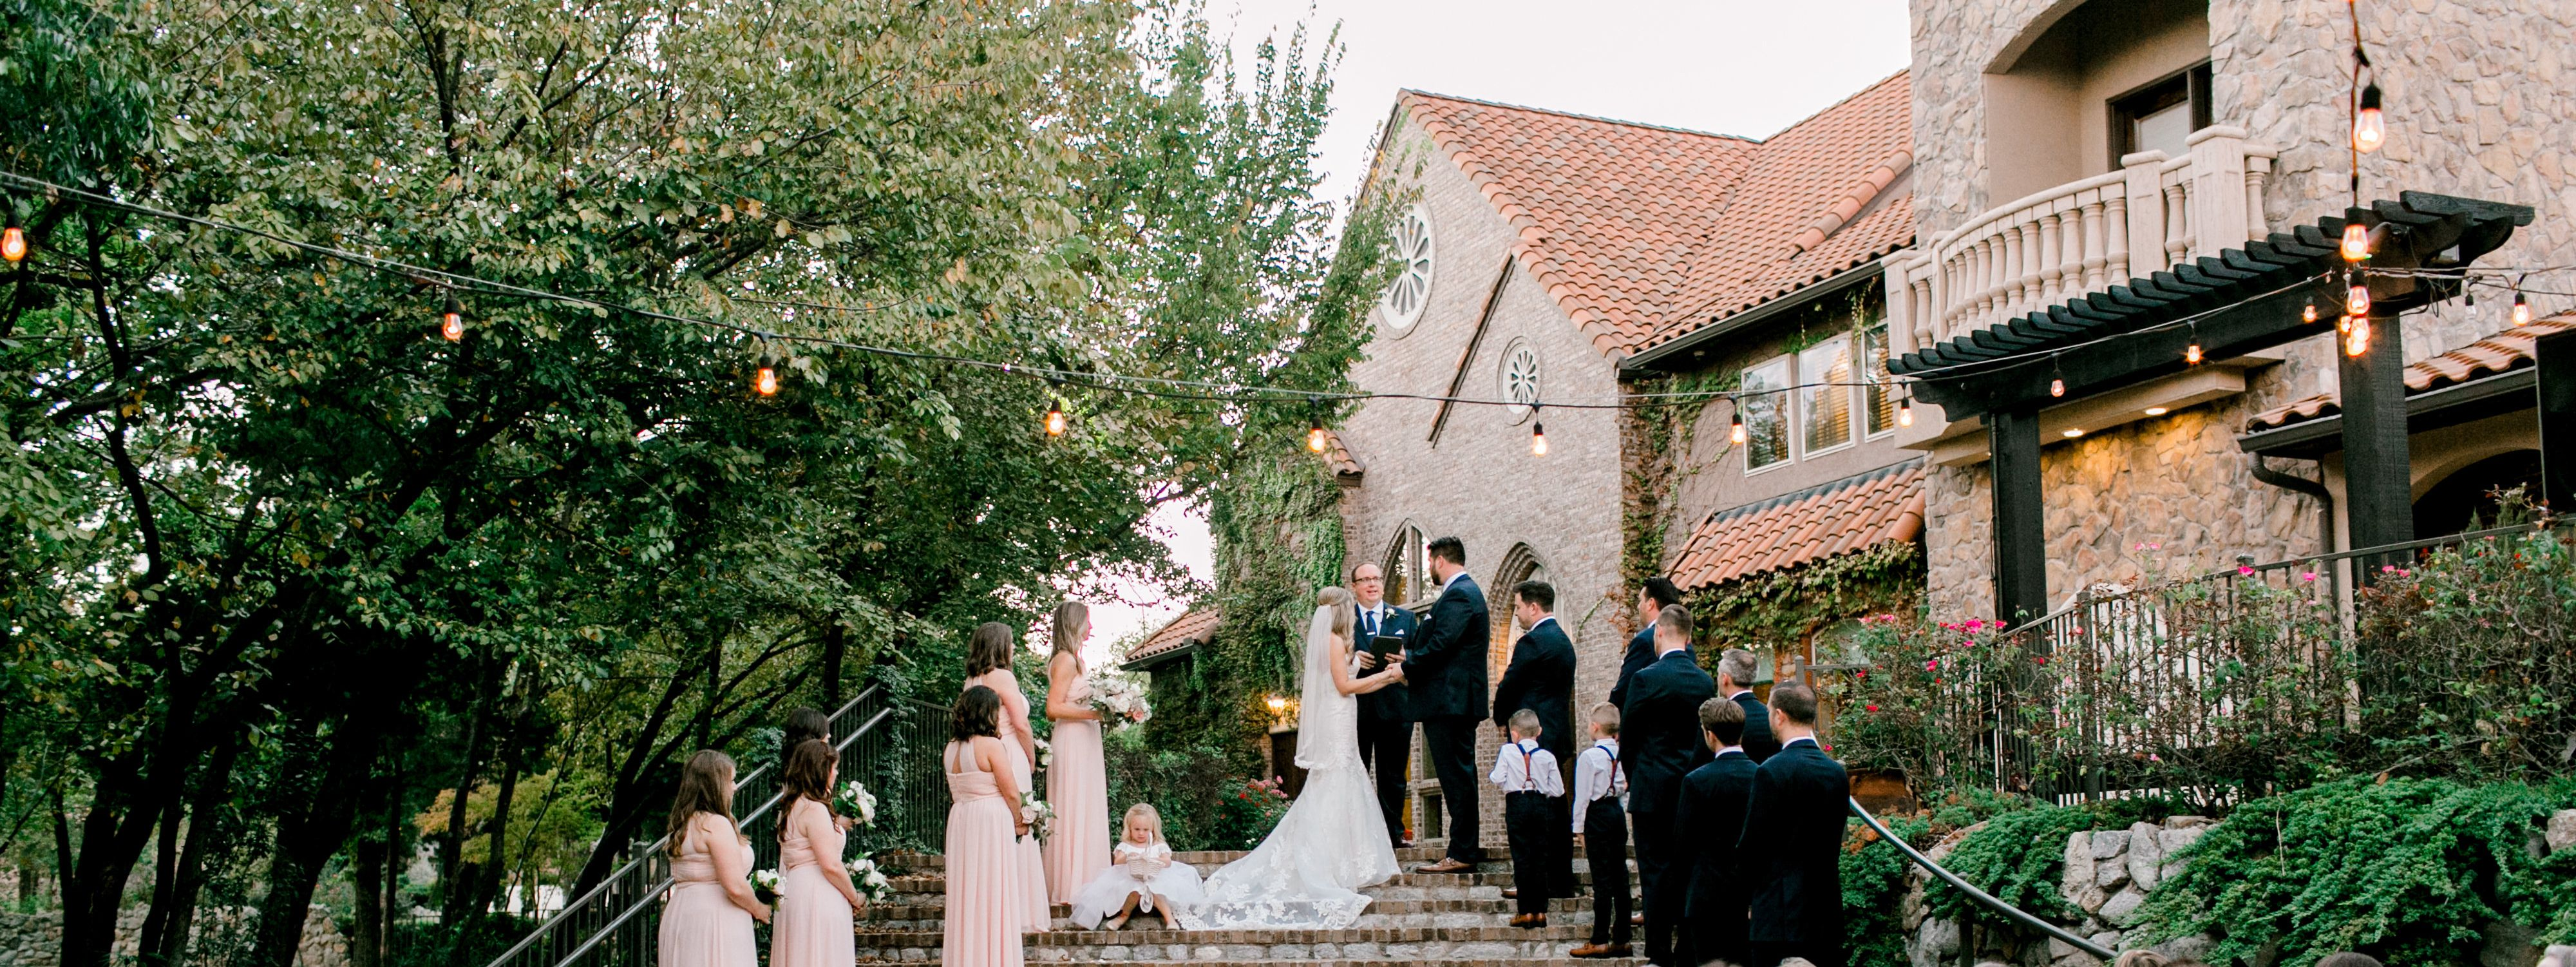 mansfield wedding venue ceremony outdoor